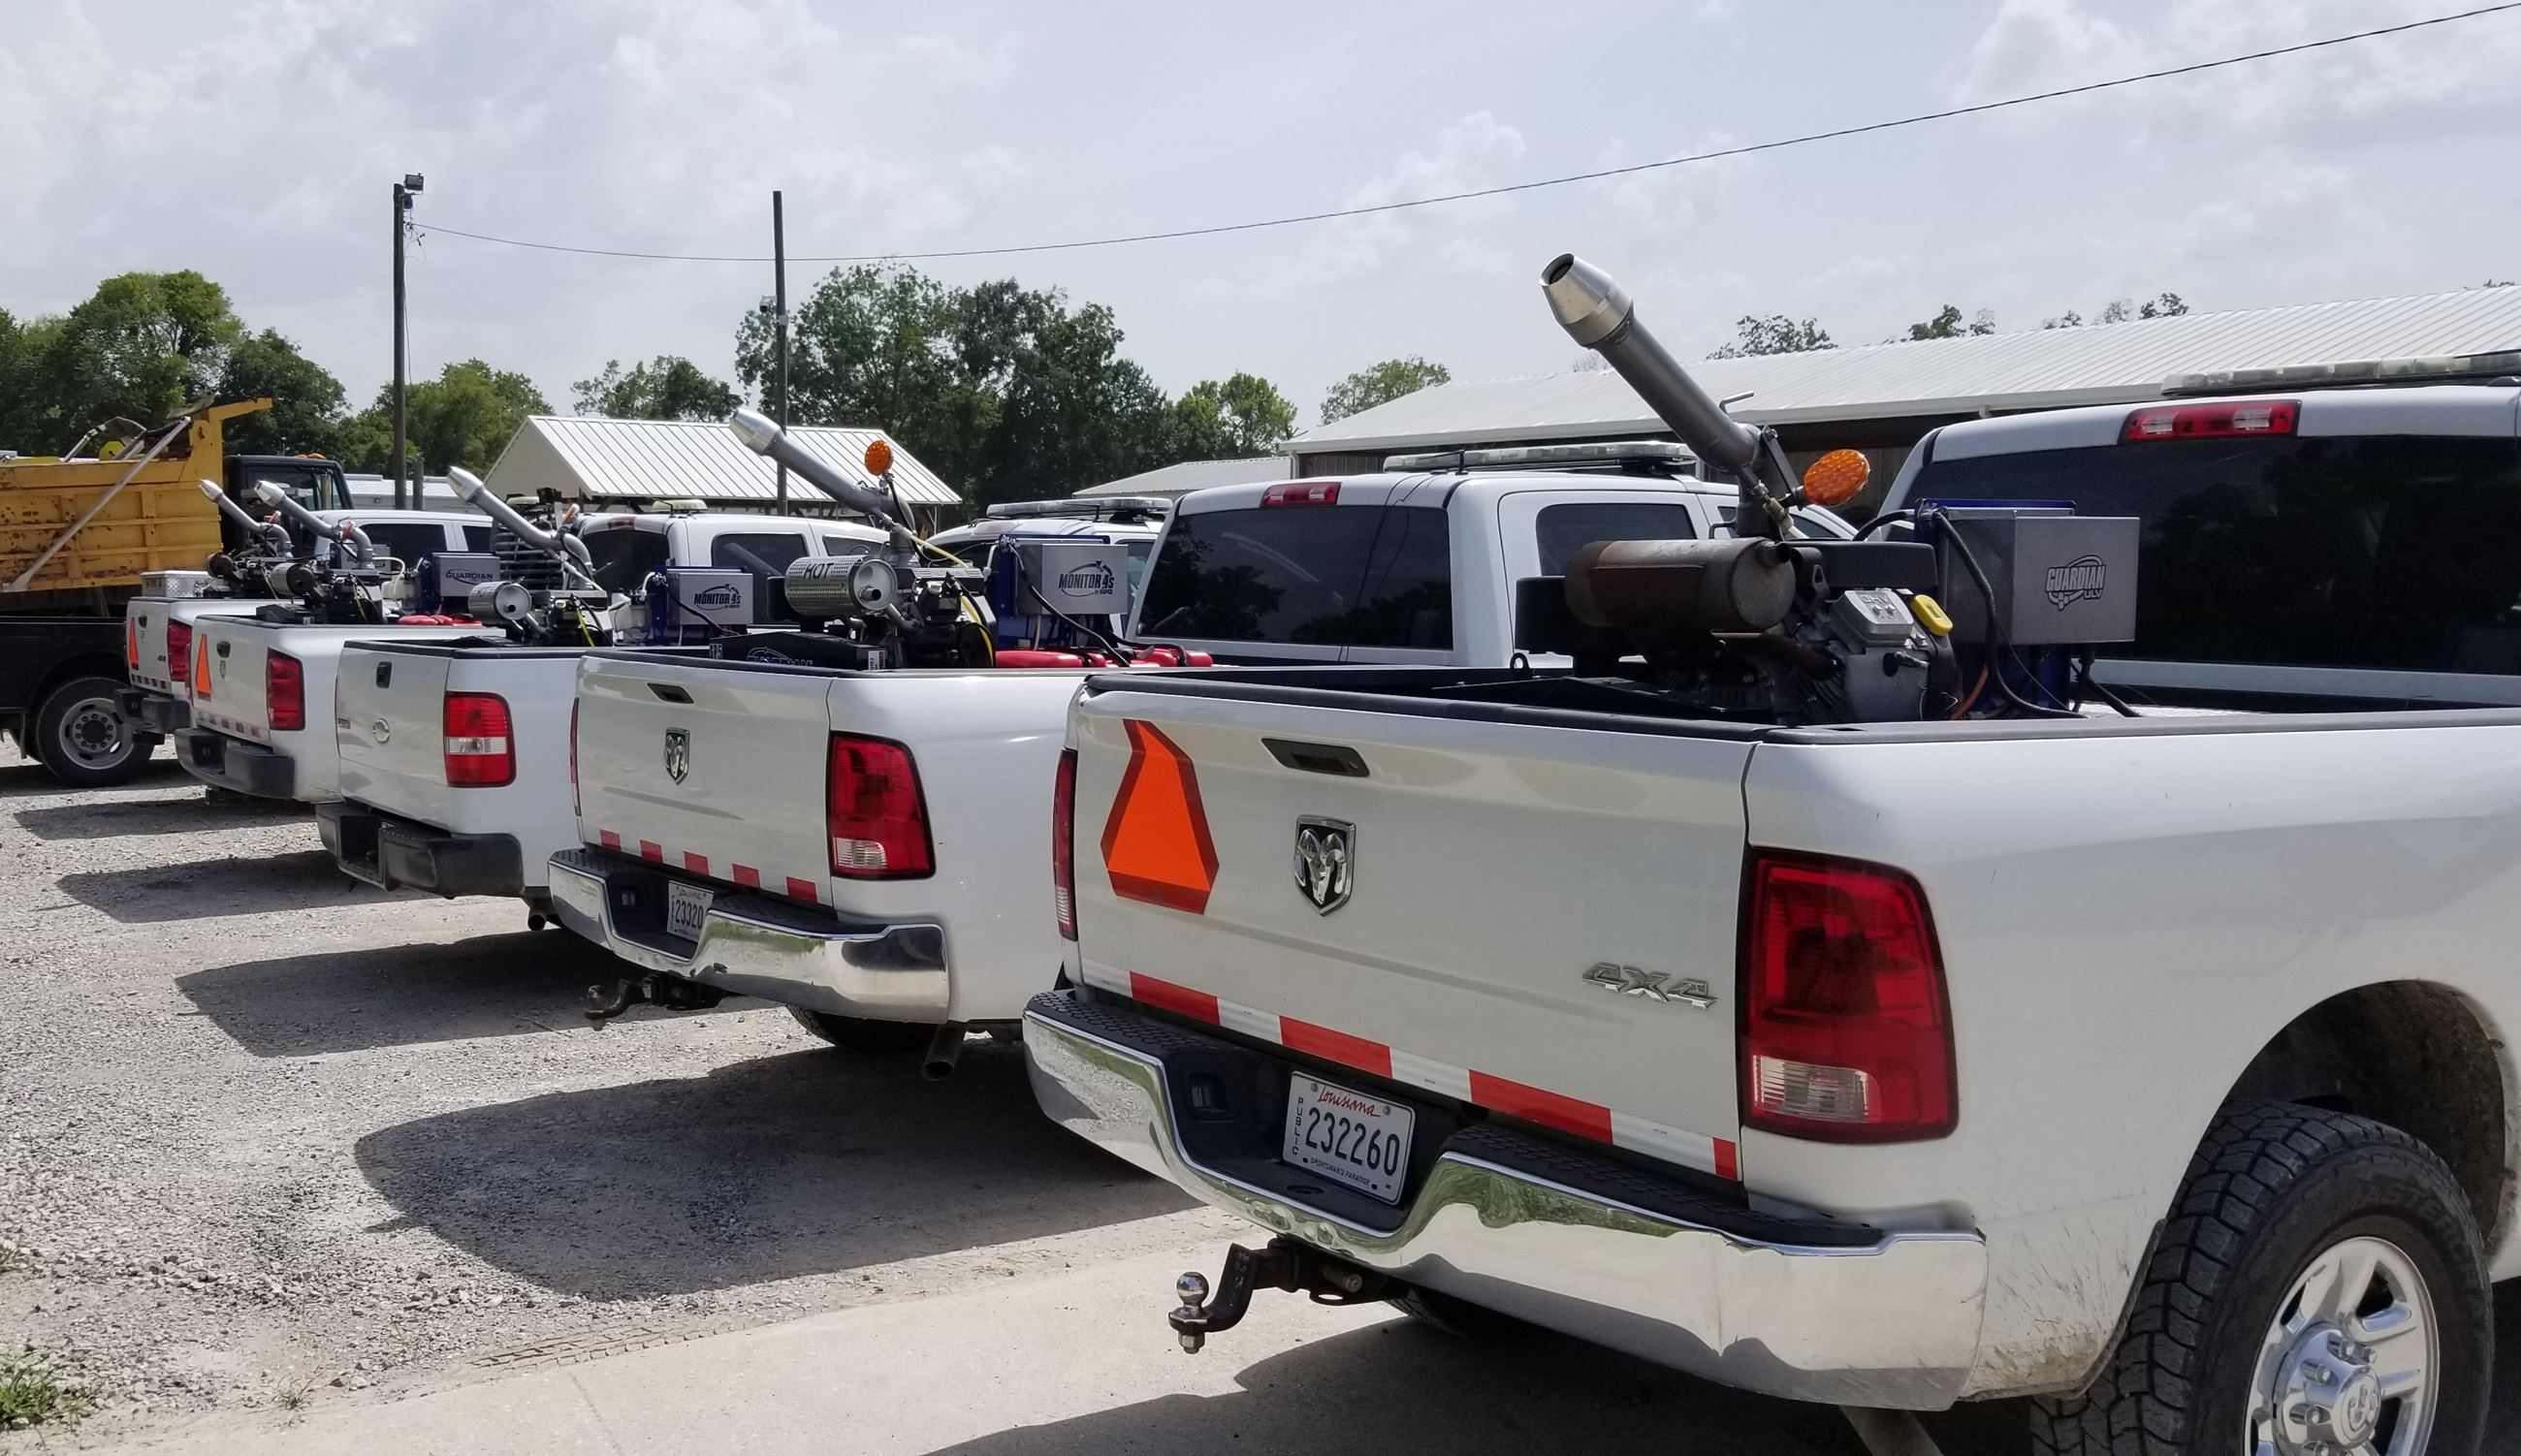 mosquito trucks in a row